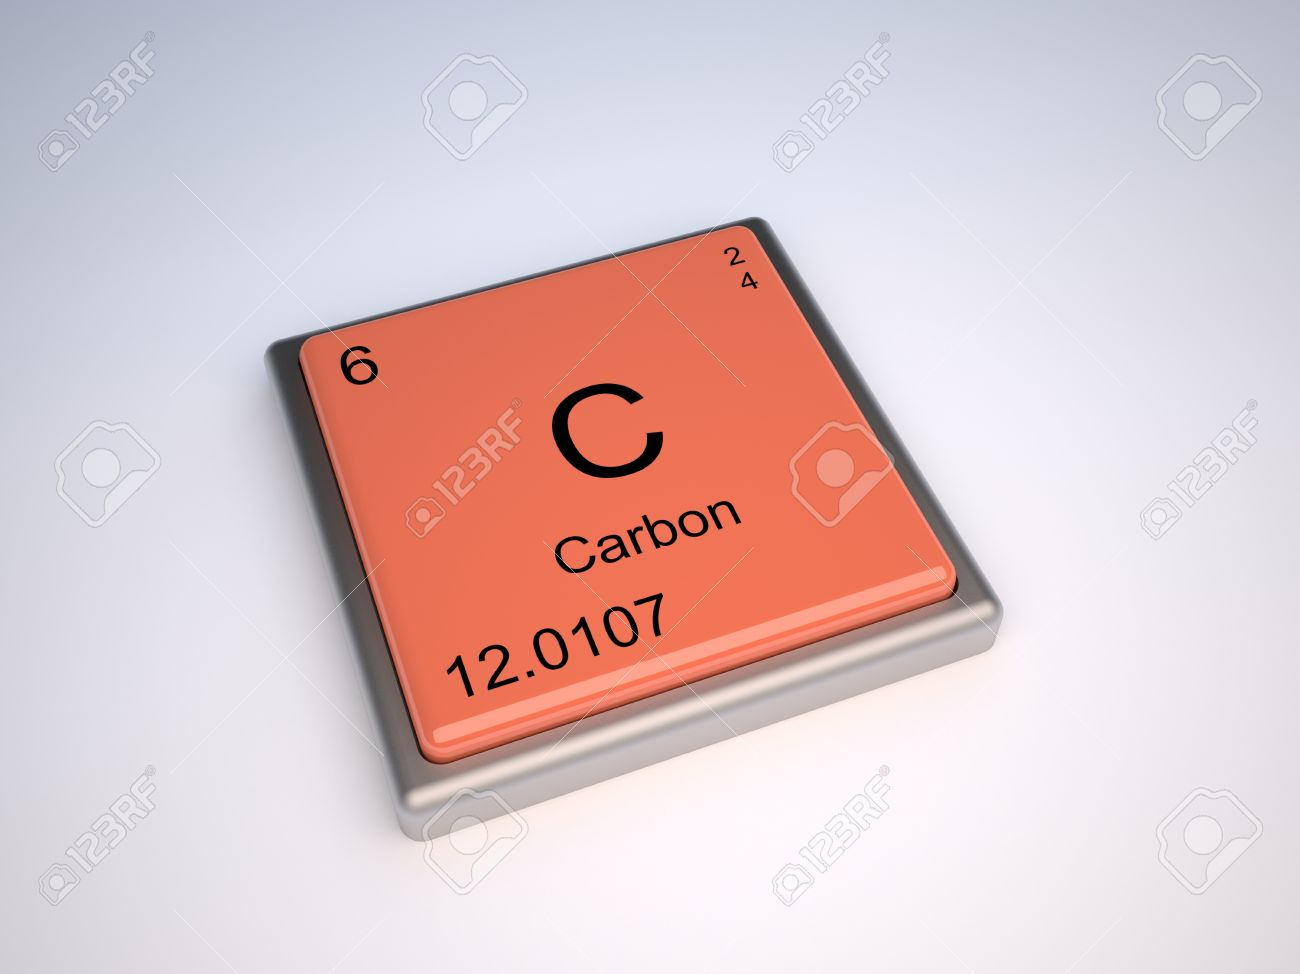 Periodic table element carbon icon netzero message center carbon chemical element of the periodic table with symbol c 9224099 carbon chemical element of the periodic table with symbol c iupac stock photo photo gamestrikefo Images